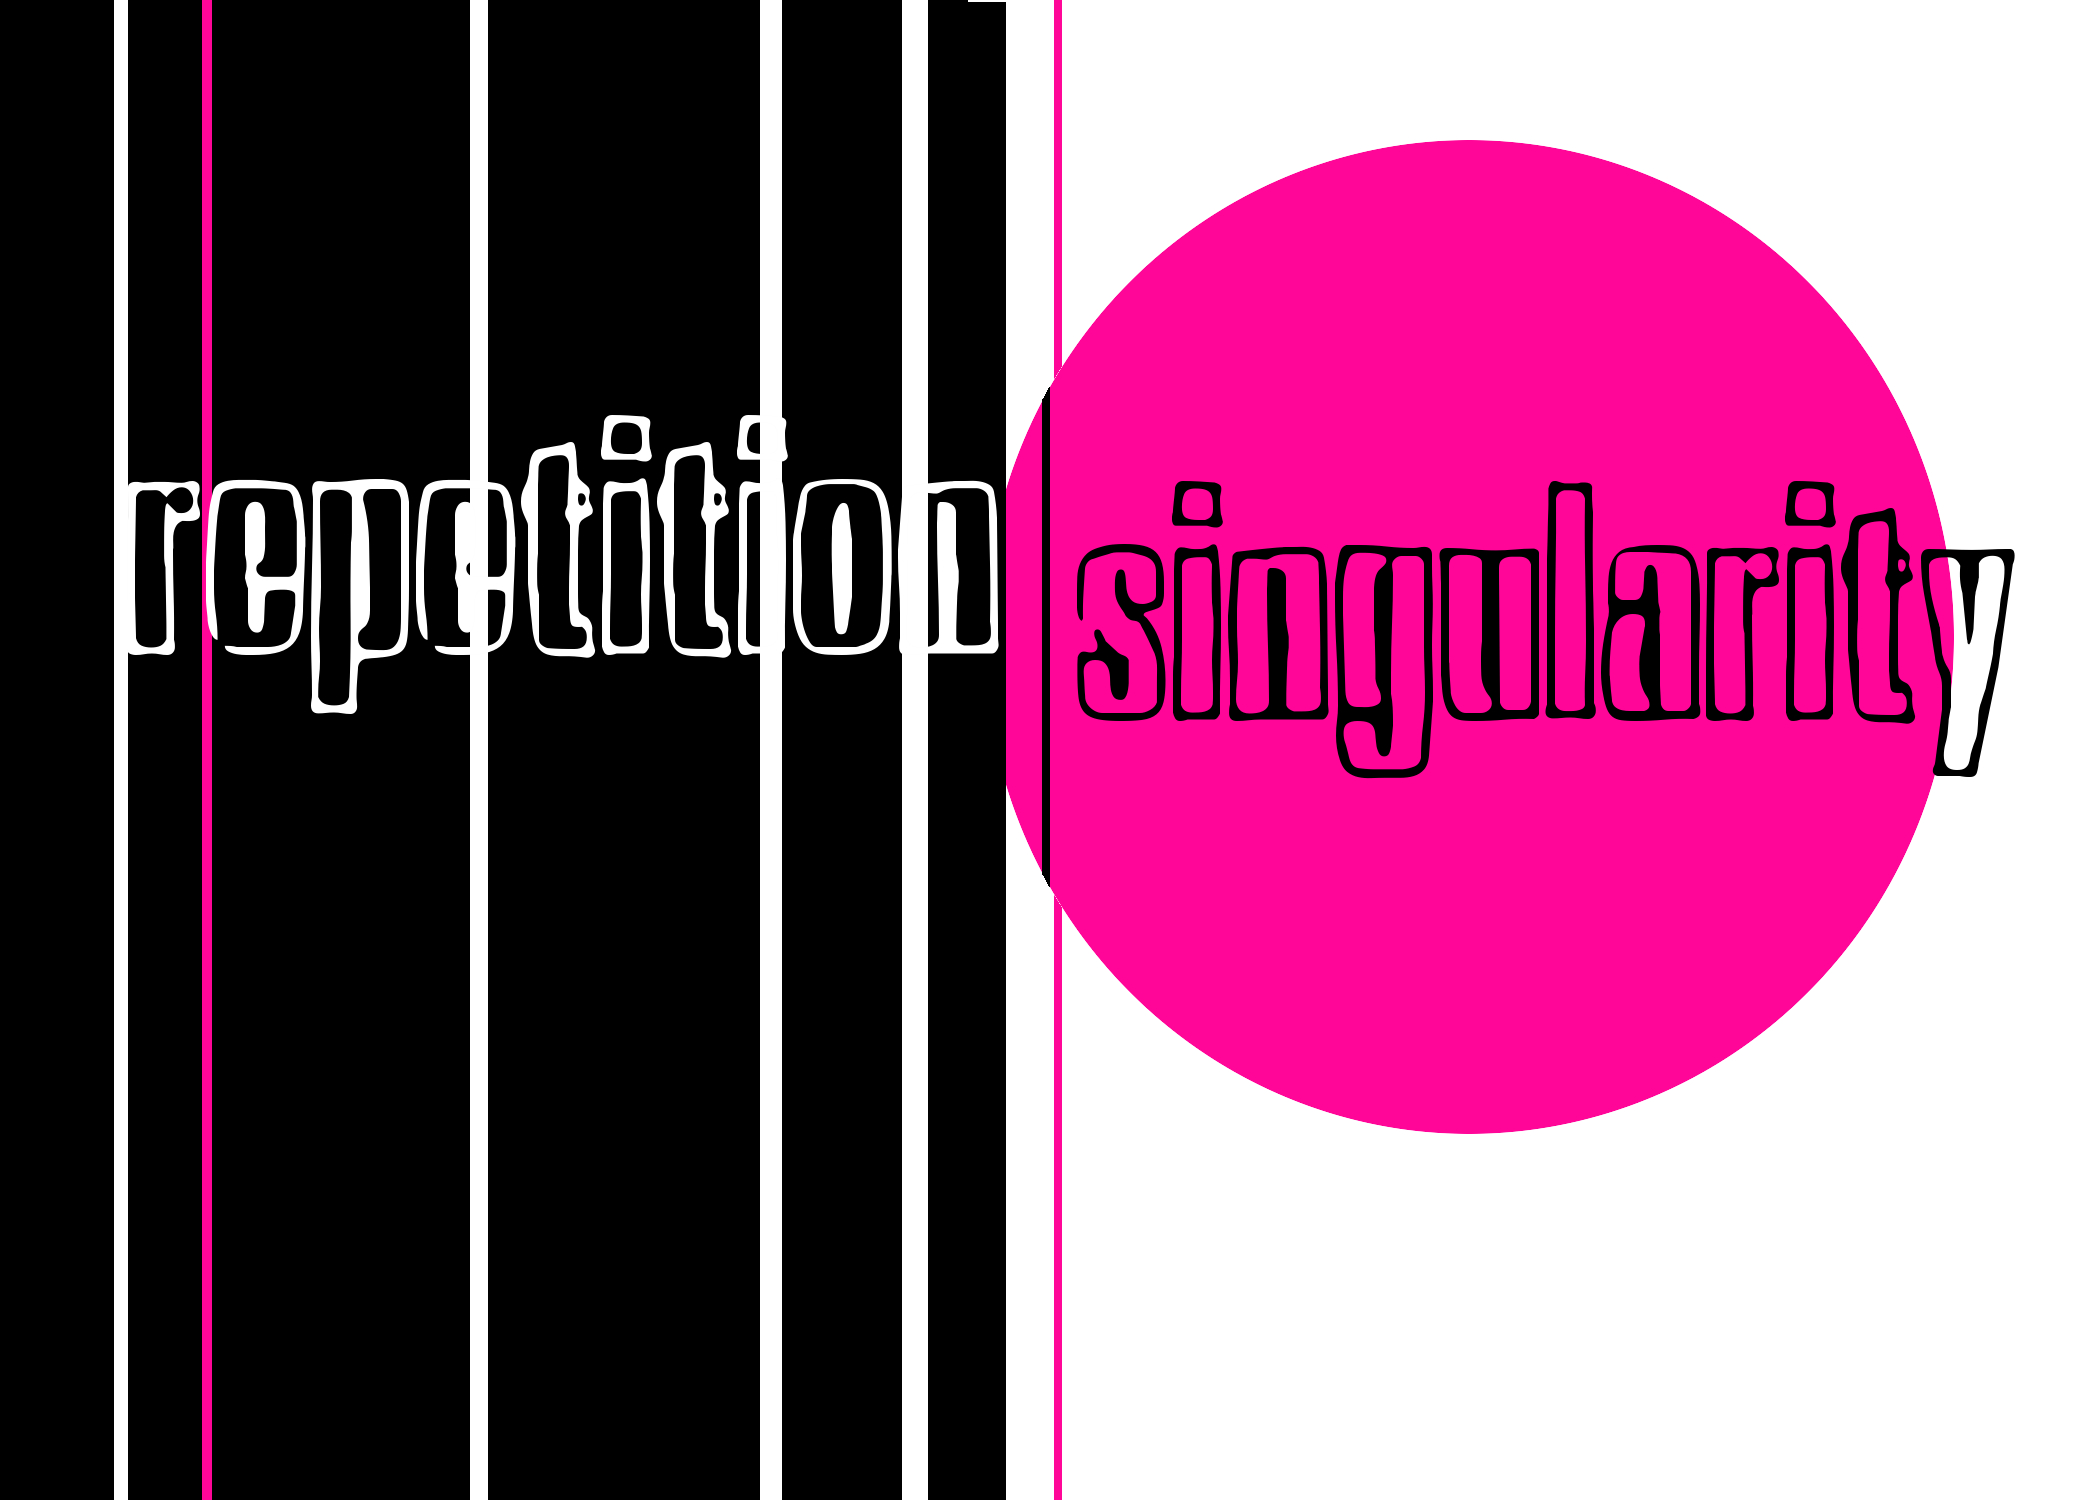 repetition | singularity